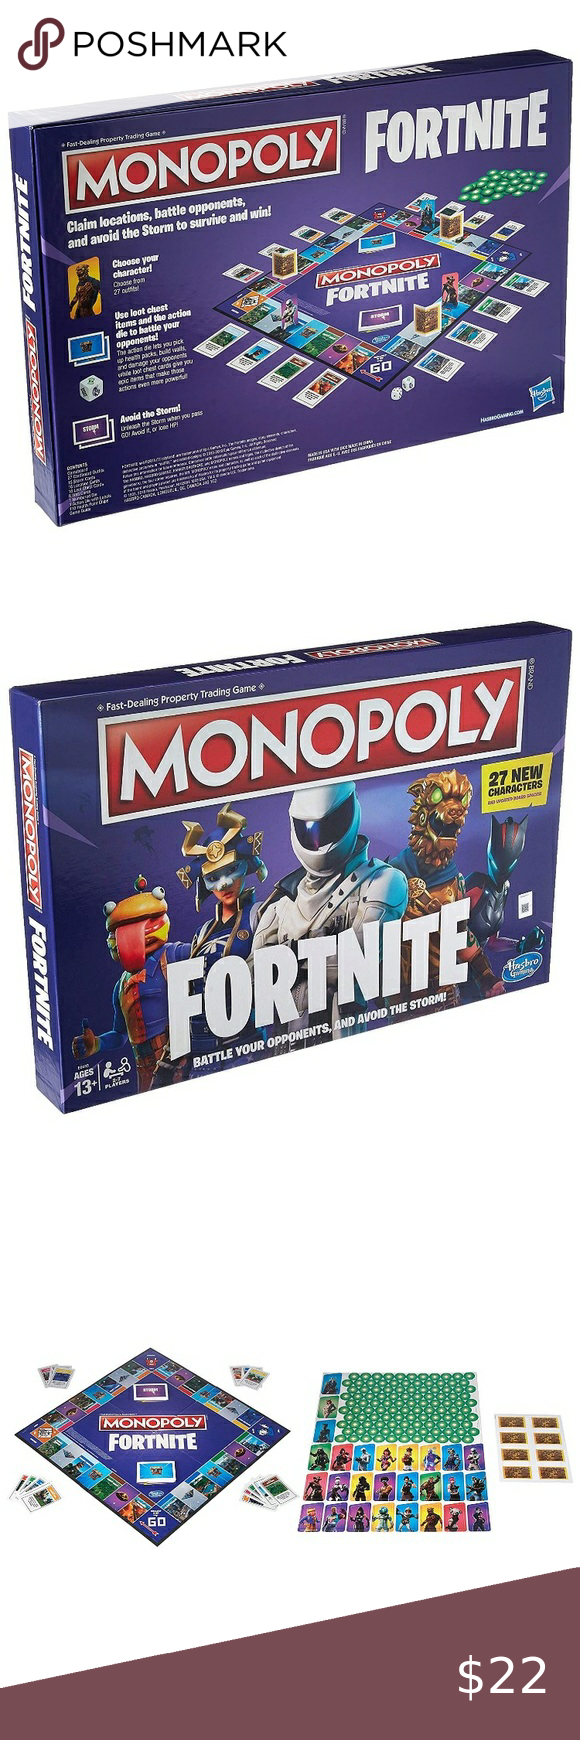 Fortnite monopoly in 2020 Fortnite, Monopoly, Puzzle game